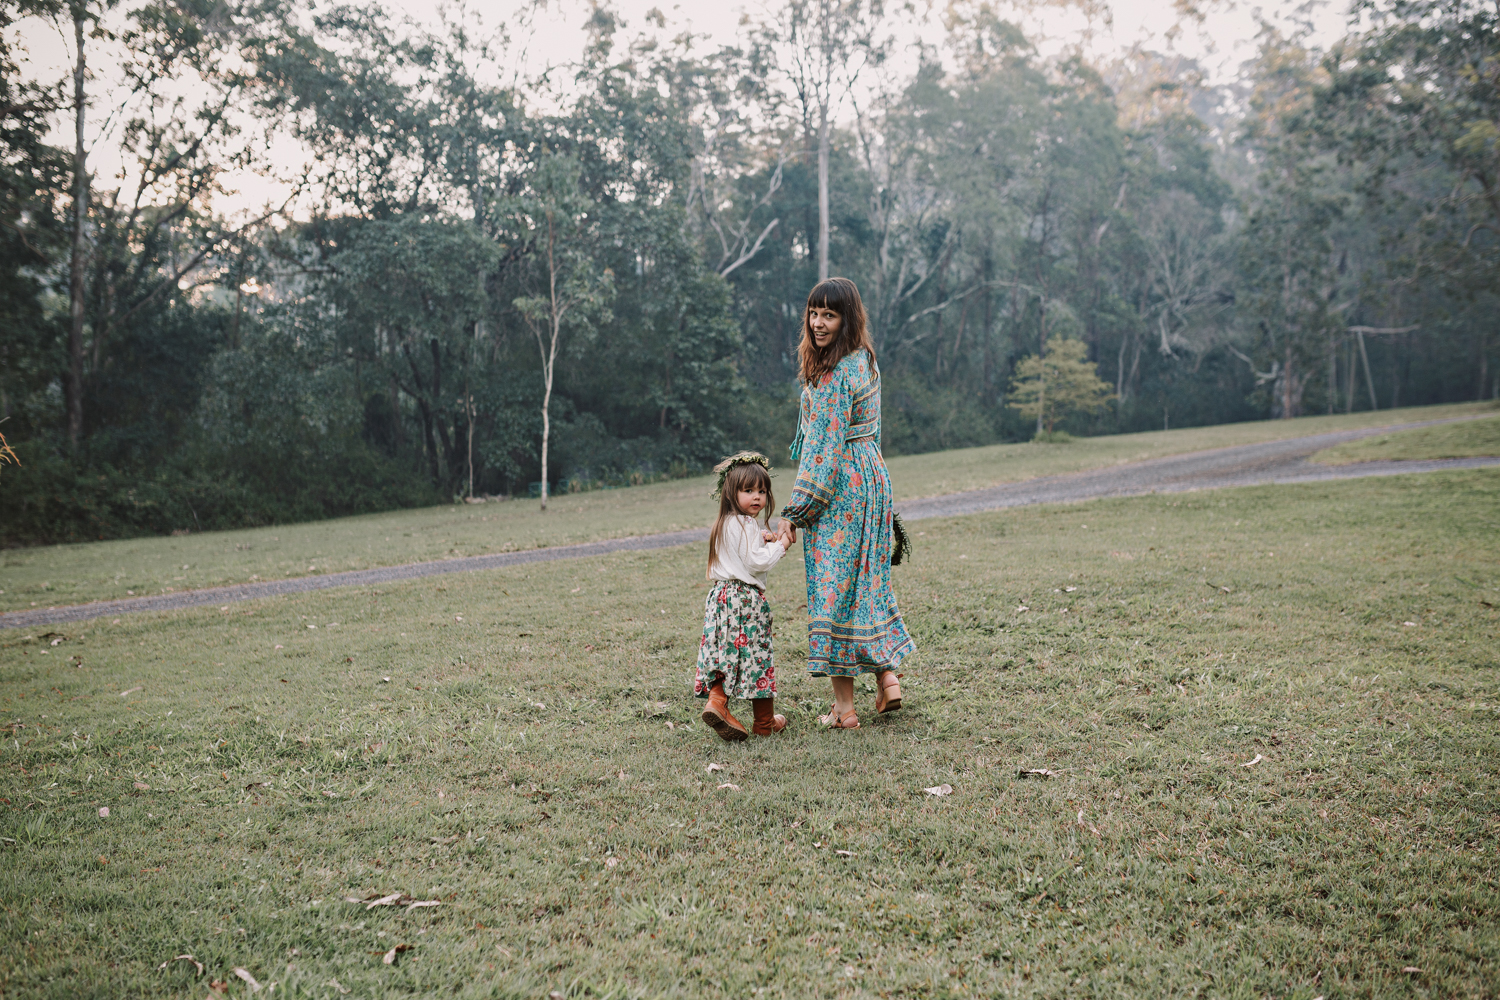 Mother and daughter walk hand in hand during photo session.